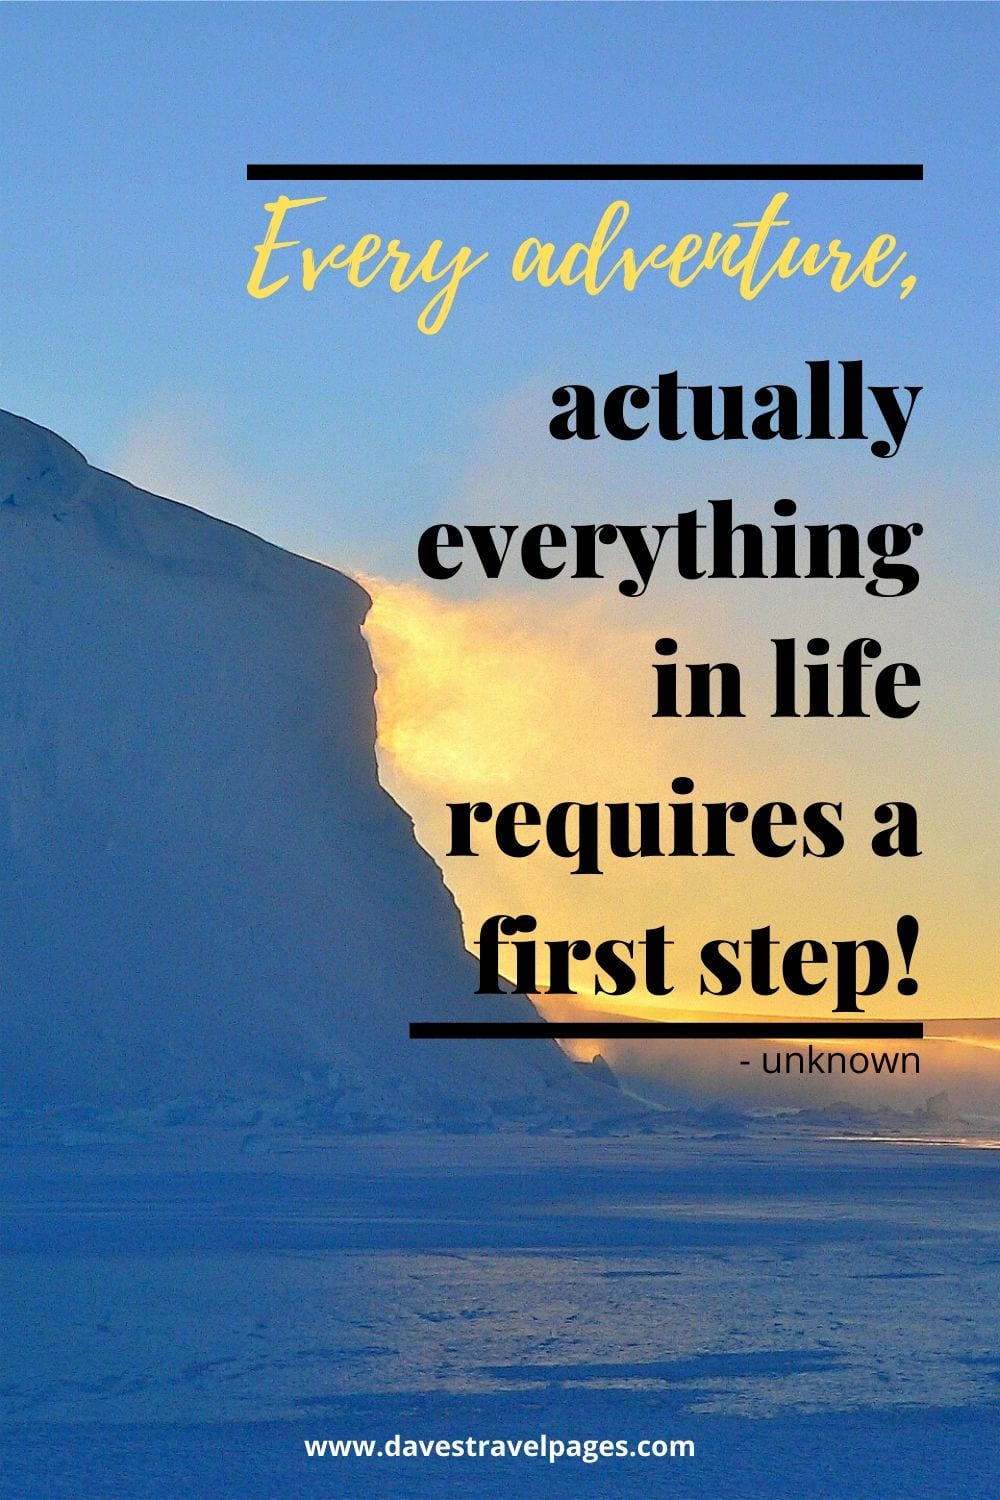 Quotes about Adventure: Every adventure, actually everything in life requires a first step!